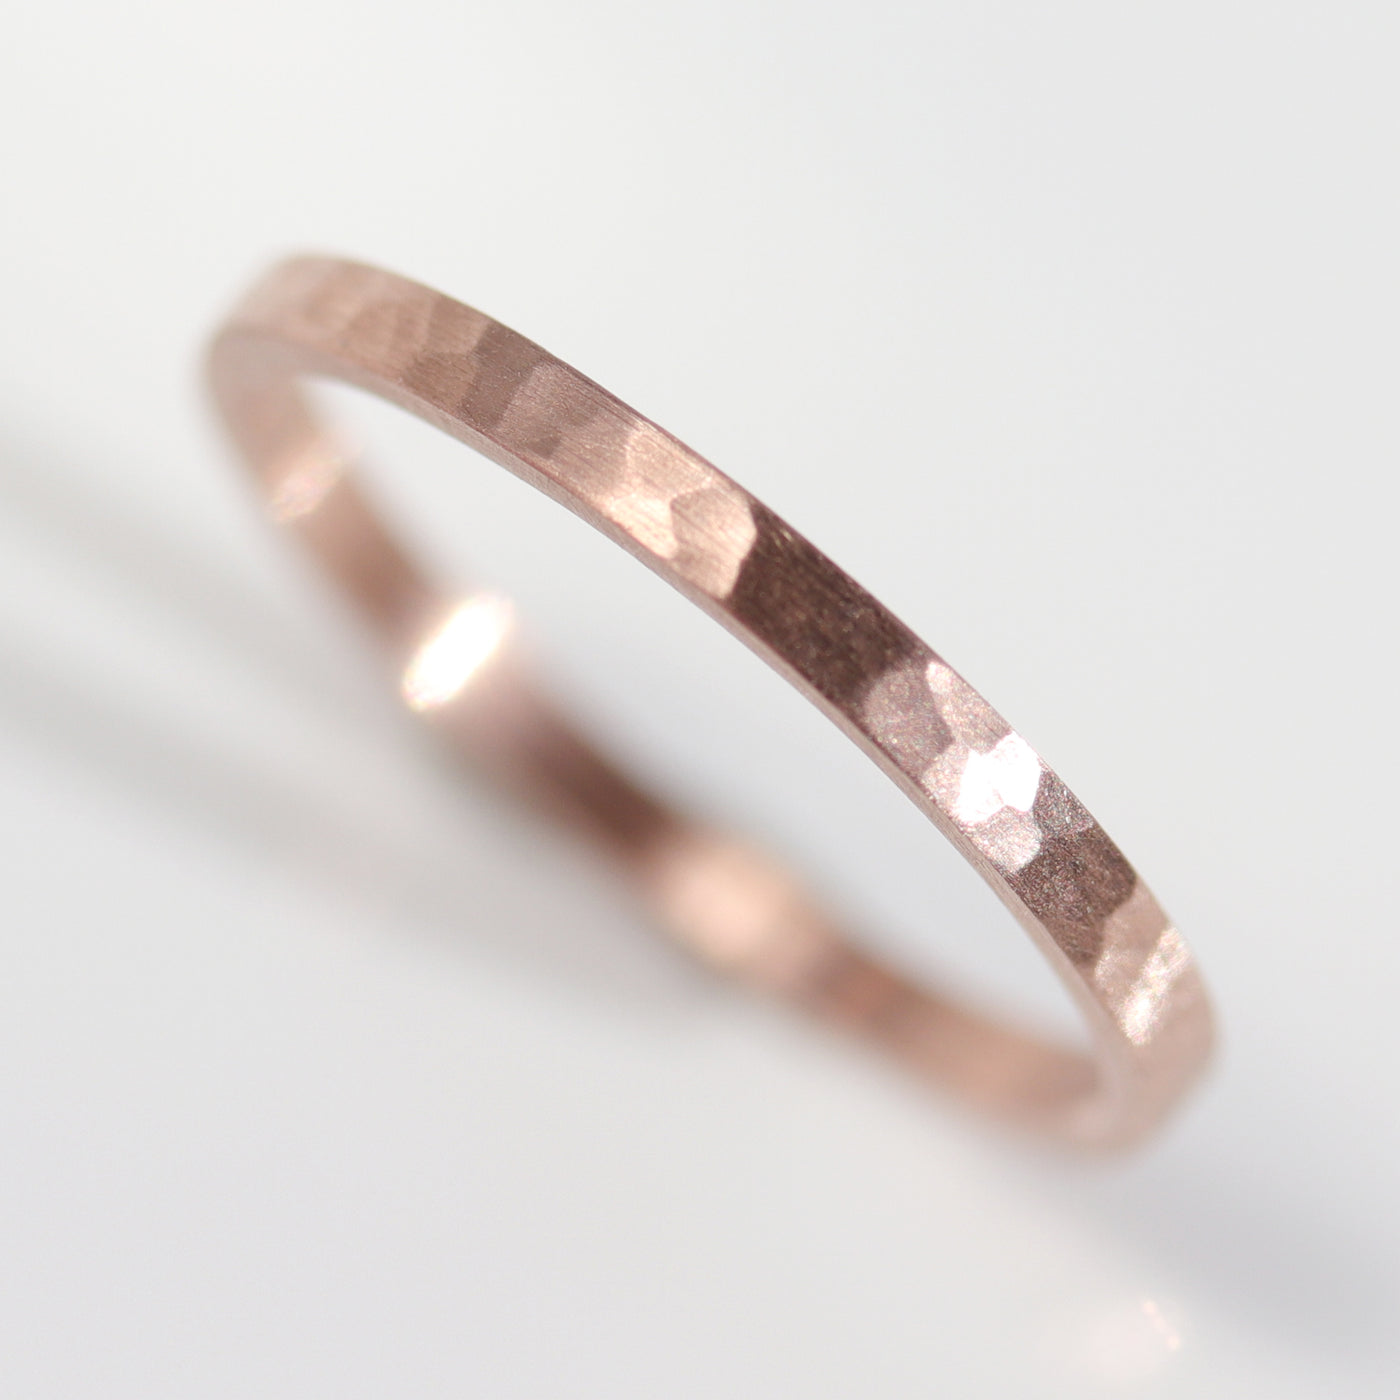 Size 2.75 - 14k Rose Gold Hammer Textured Skinny Flat Ring